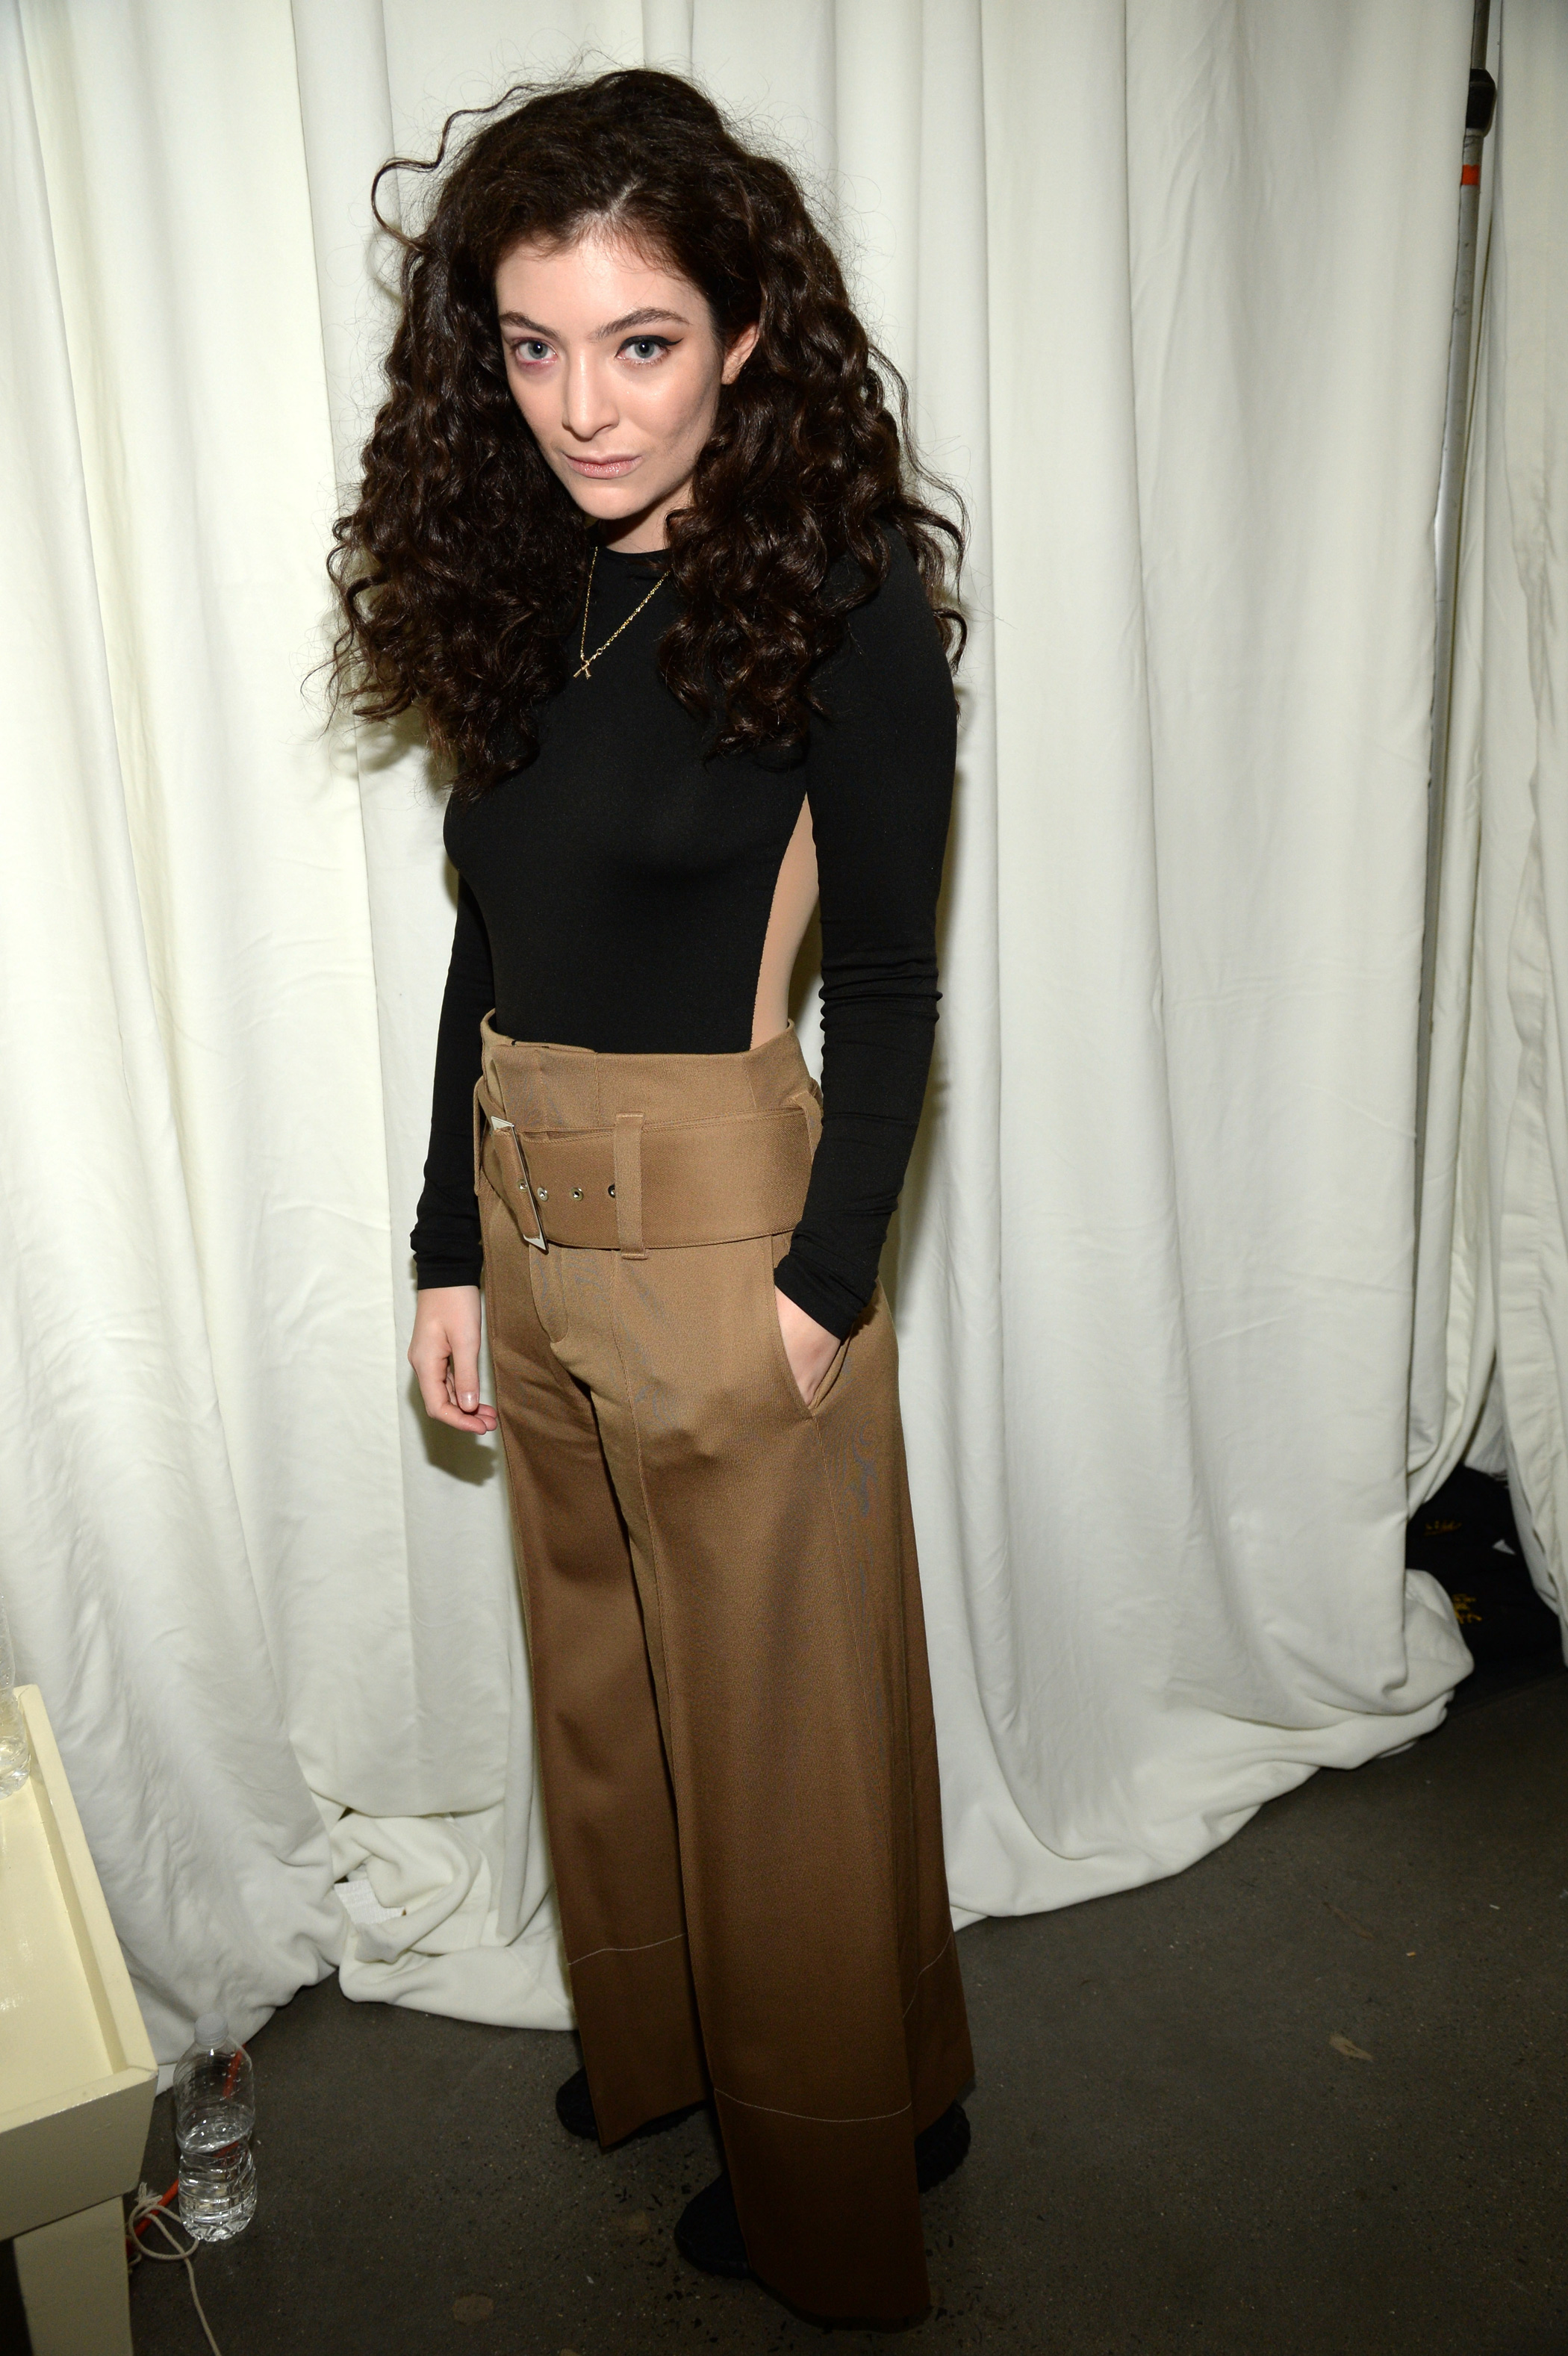 Lorde attends Kanye West Yeezy Season 2 during New York Fashion Week on Sept. 16, 2015 in New York City.